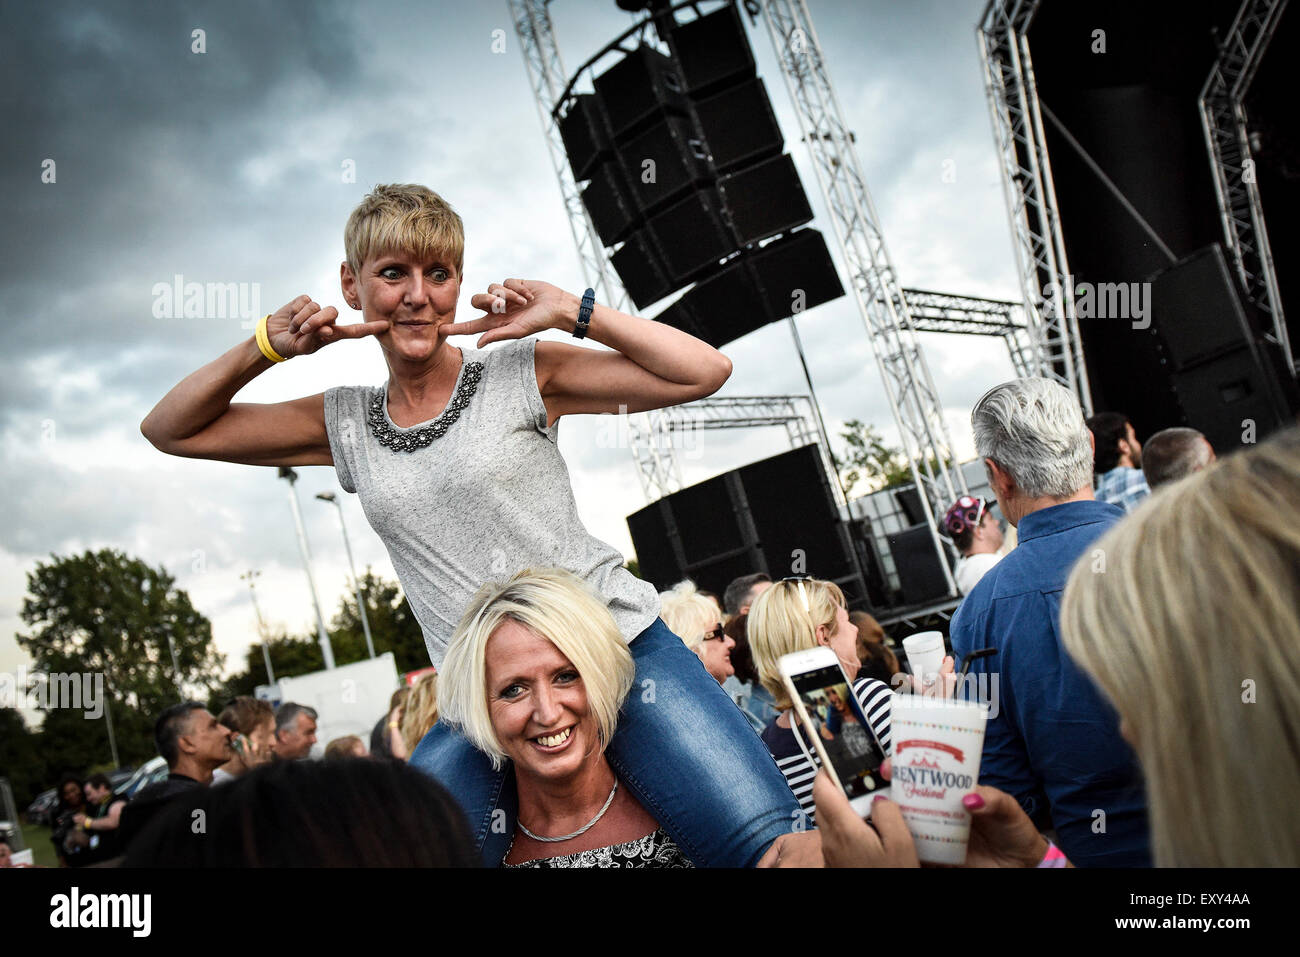 Brentwood, Essex.  17th July, 2015.  The people of Essex let their hair down and party the night away at the Brentwood - Stock Image